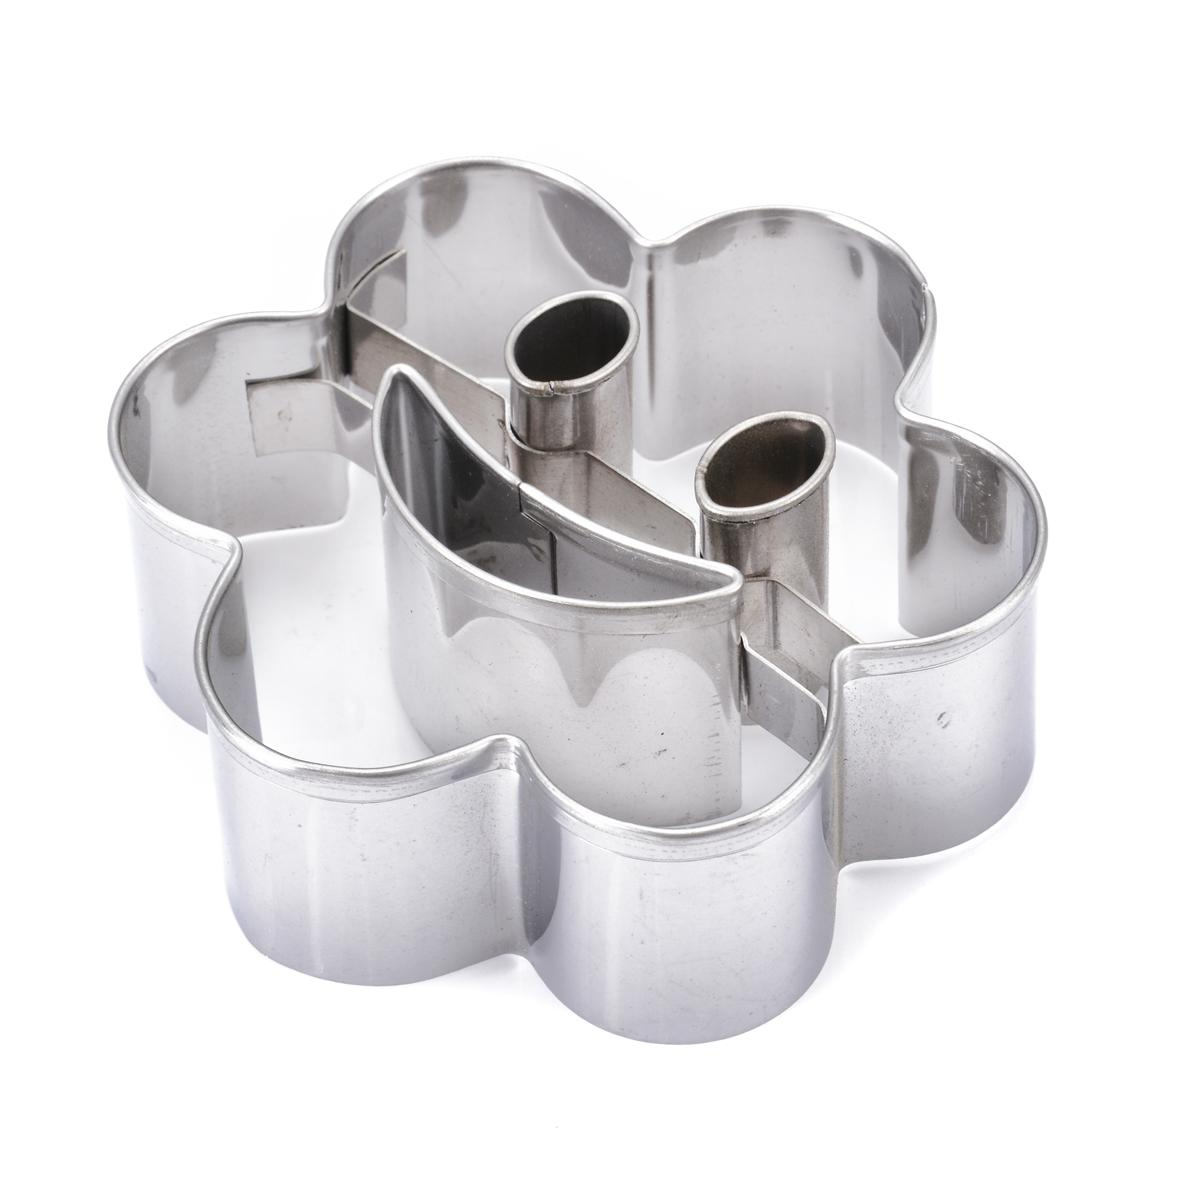 4Pcs Stainless Steel Smiling Face Biscuit Cookie Cutter Cake Decor Mould DIY For Kitchen Baking Supplies